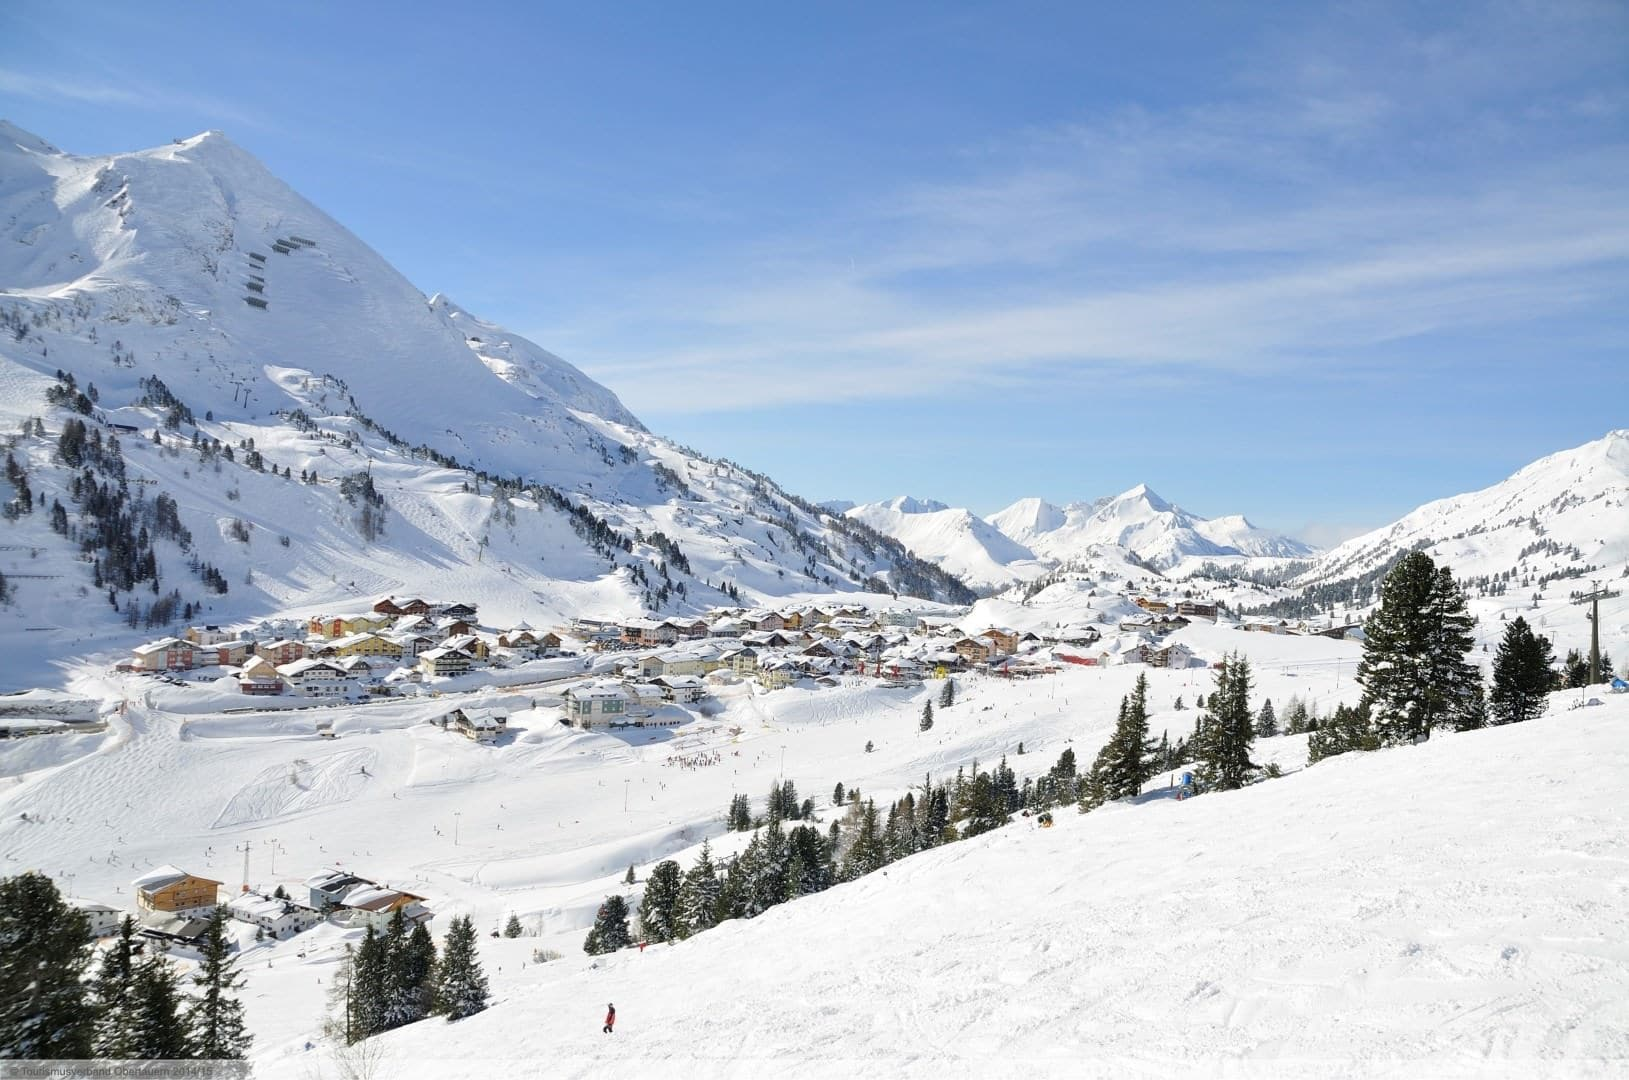 wintersport en aanbiedingen in Obertauern